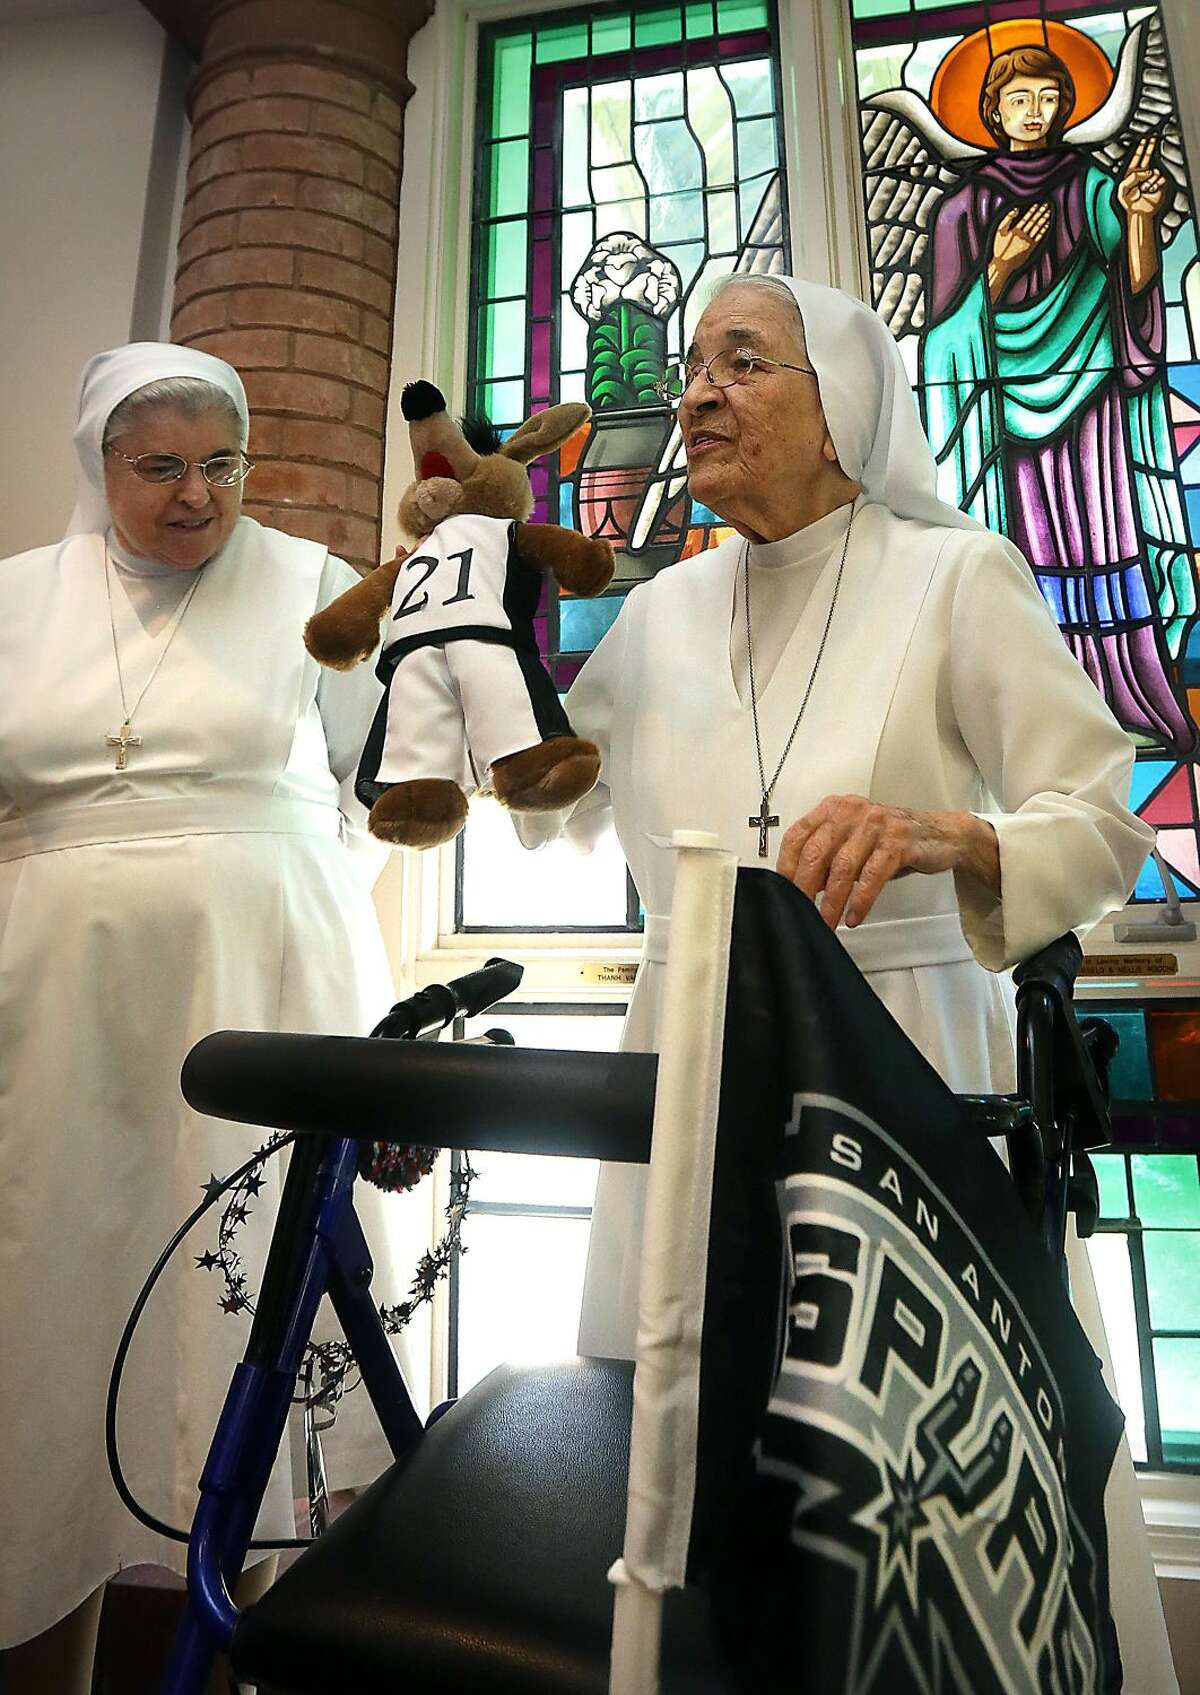 Sister Rosalba Garcia, right, holds a Coyote doll as Sister Kathy Keane looks on Wednesday, June 19 in San Antonio. Nuns from the Salesian Sisters love their Spurs and pray for them before and during games. (Photo by Bob Owen/San Antonio Express-News)